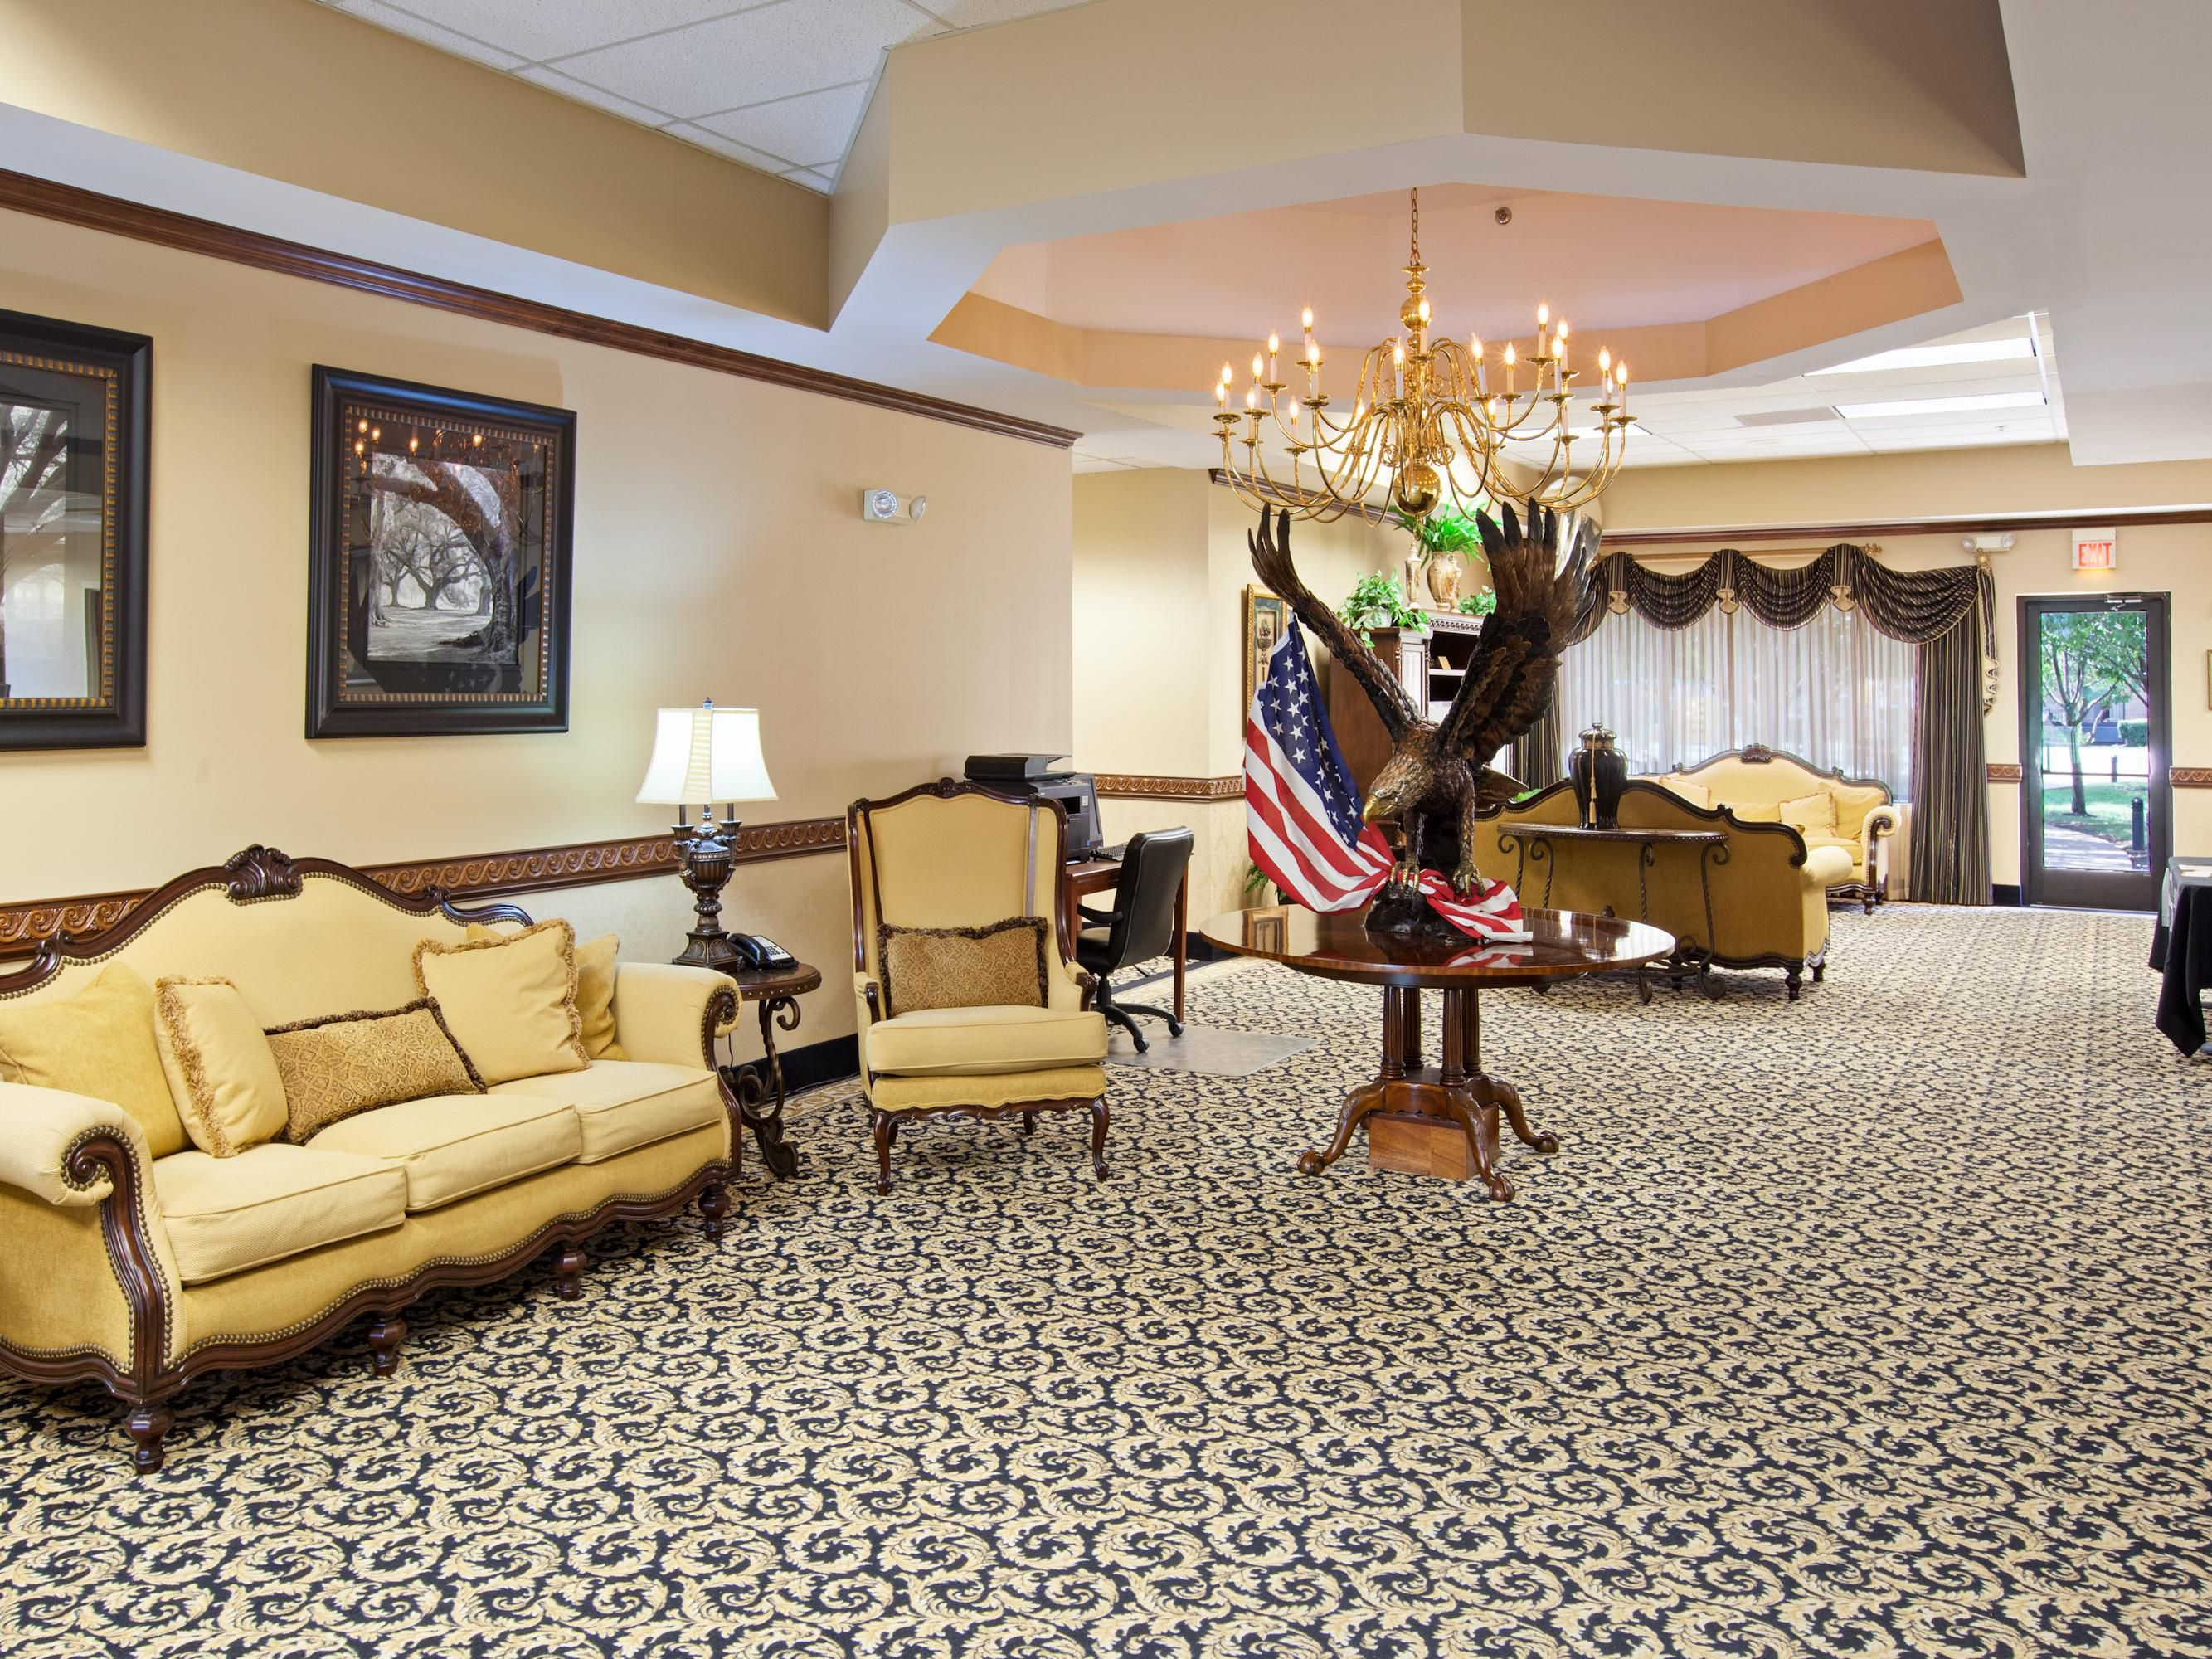 The Lyle Room is located on the second floor in the front of the house overlooking the Cumberland River and miles of farmland. Decorated in gentle lavender, the king size canopy bed lends your stay to the peaceful tranquility of country living.